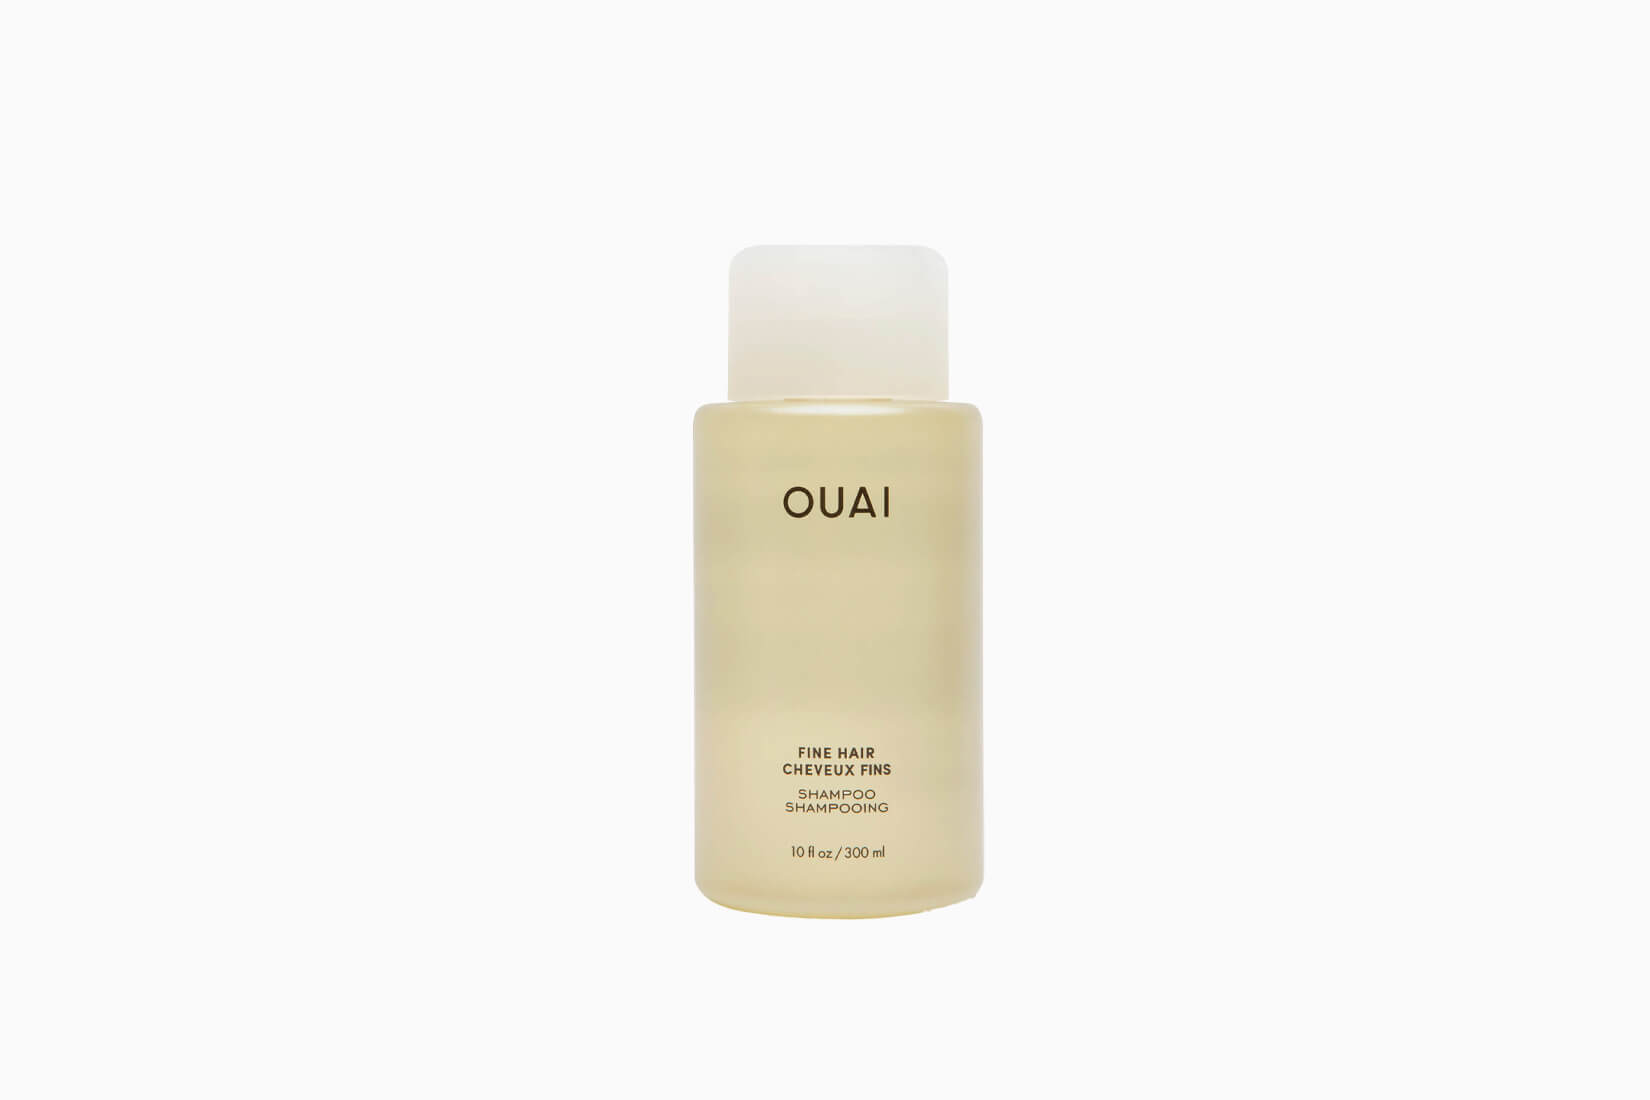 best hair growth shampoo women ouai review - Luxe Digital